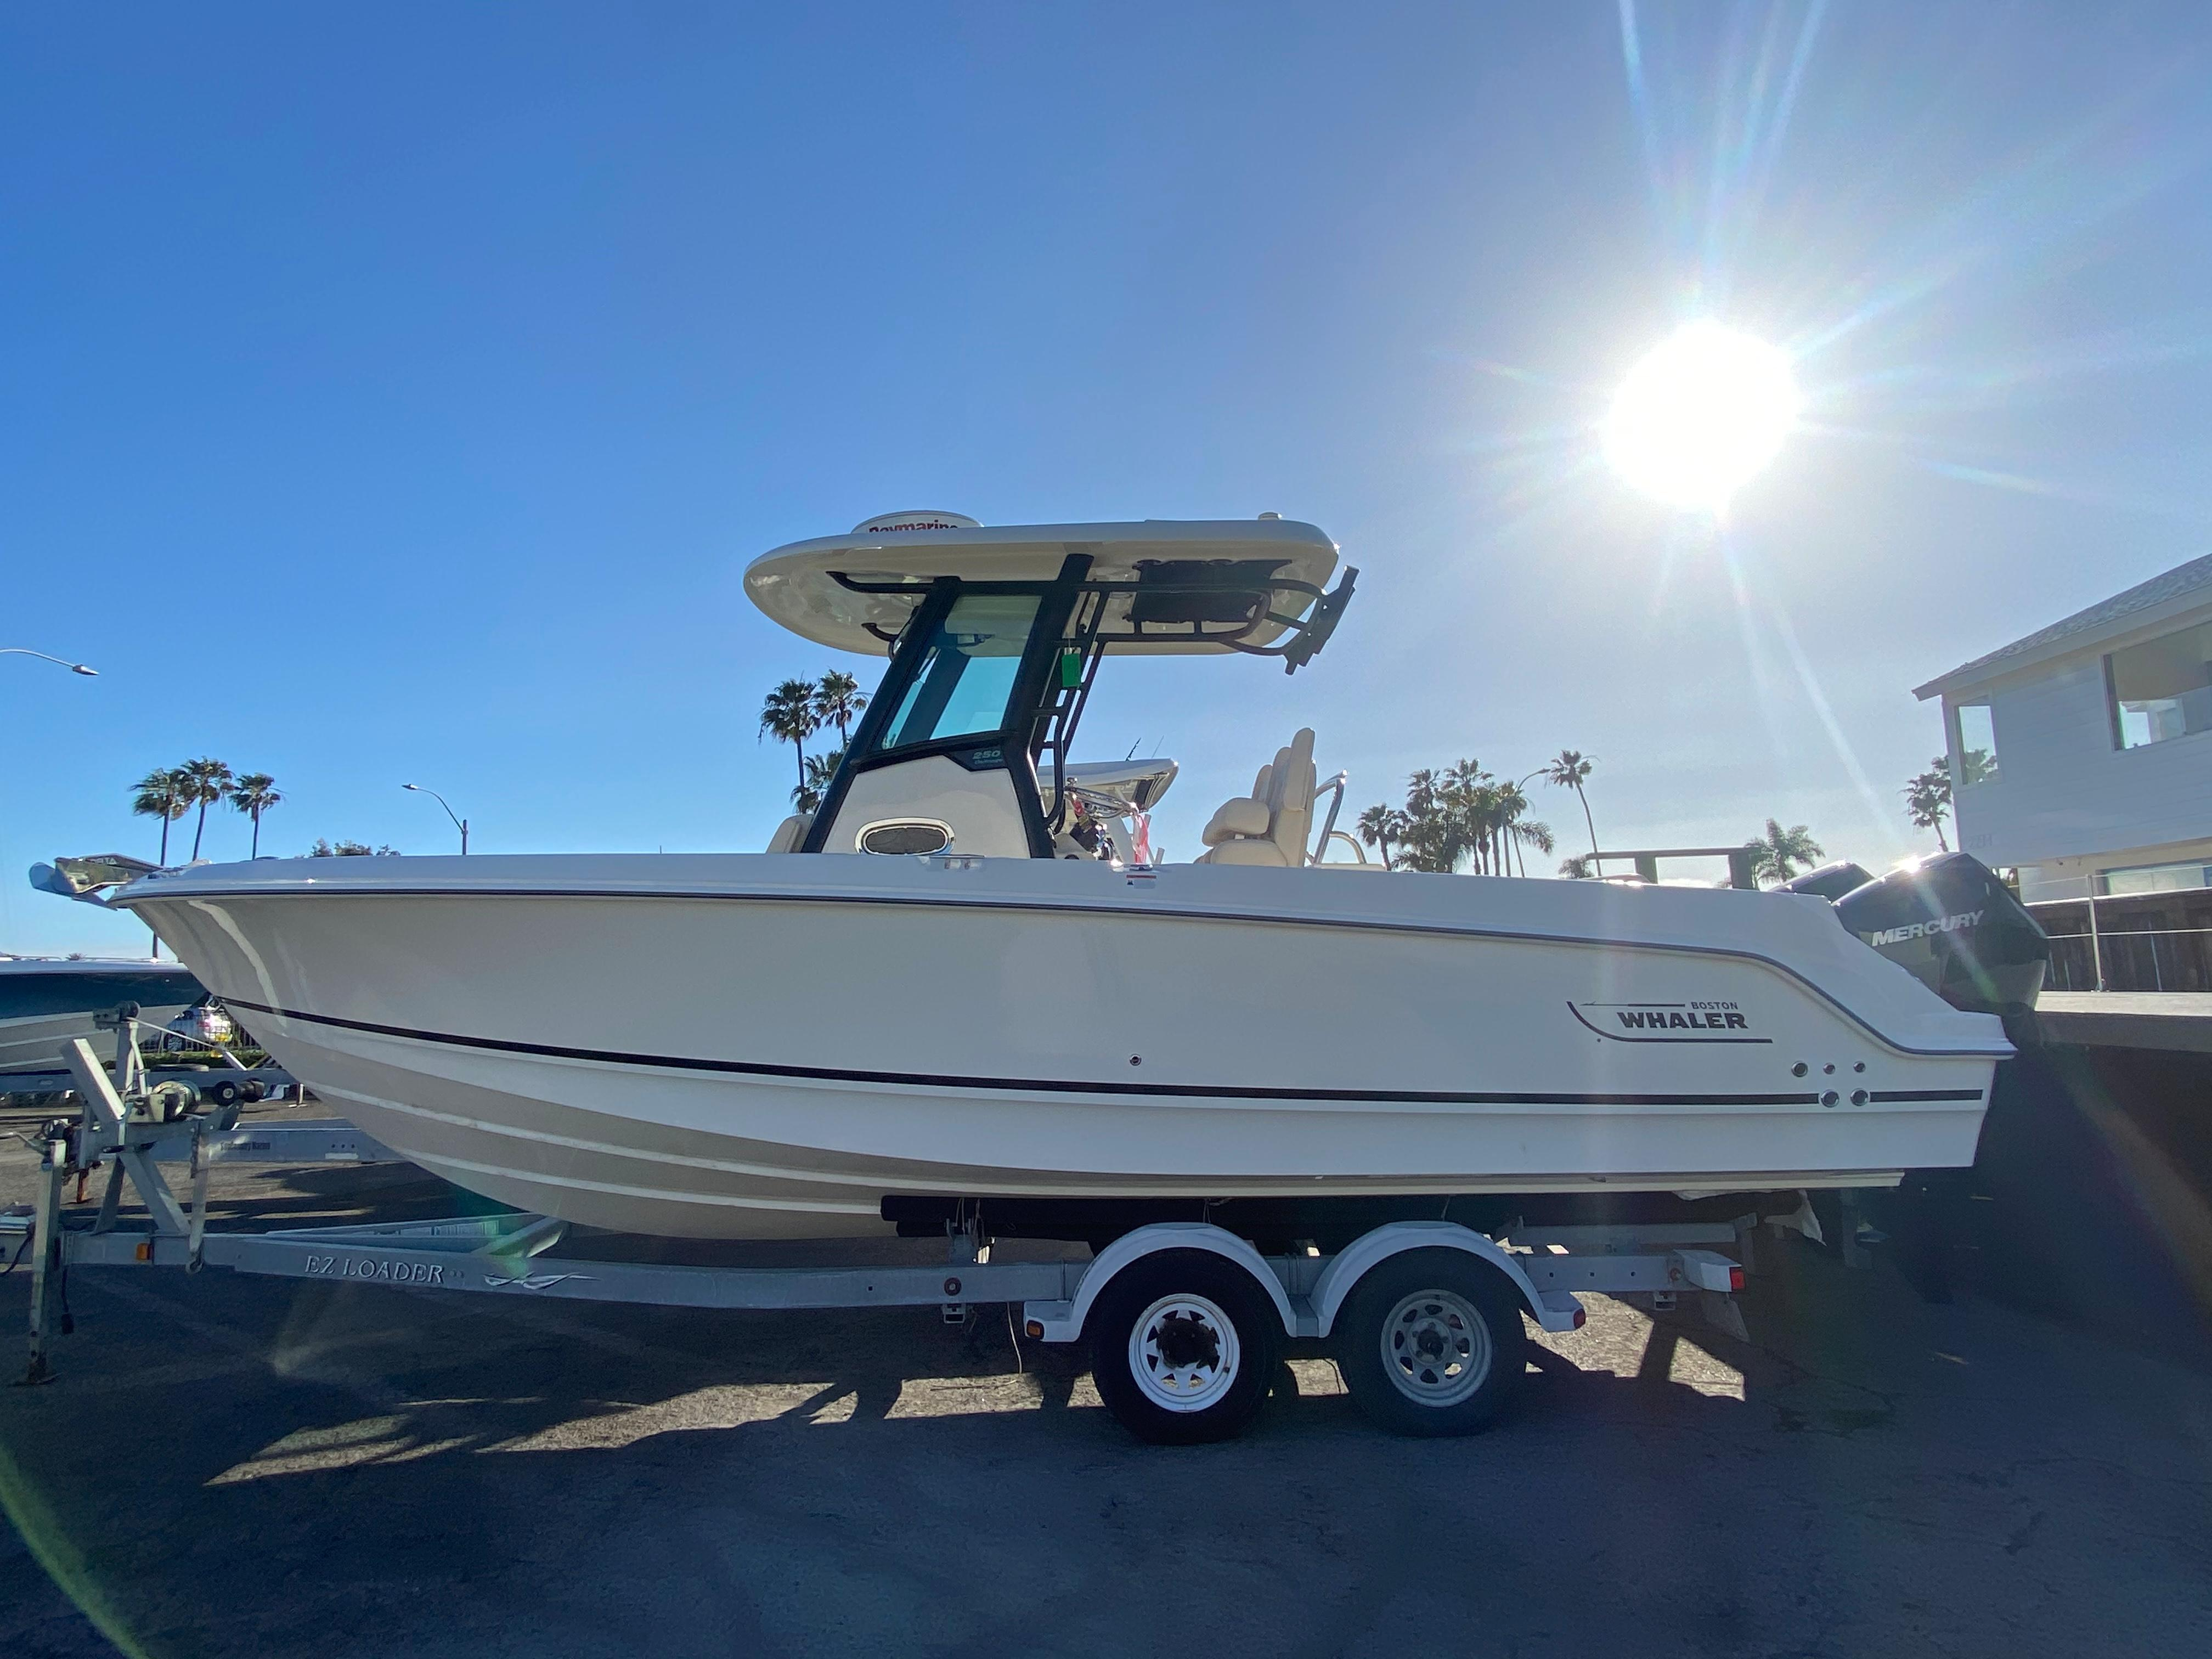 2021 Boston Whaler 250 Outrage #BW1660A inventory image at Sun Country Coastal in Newport Beach